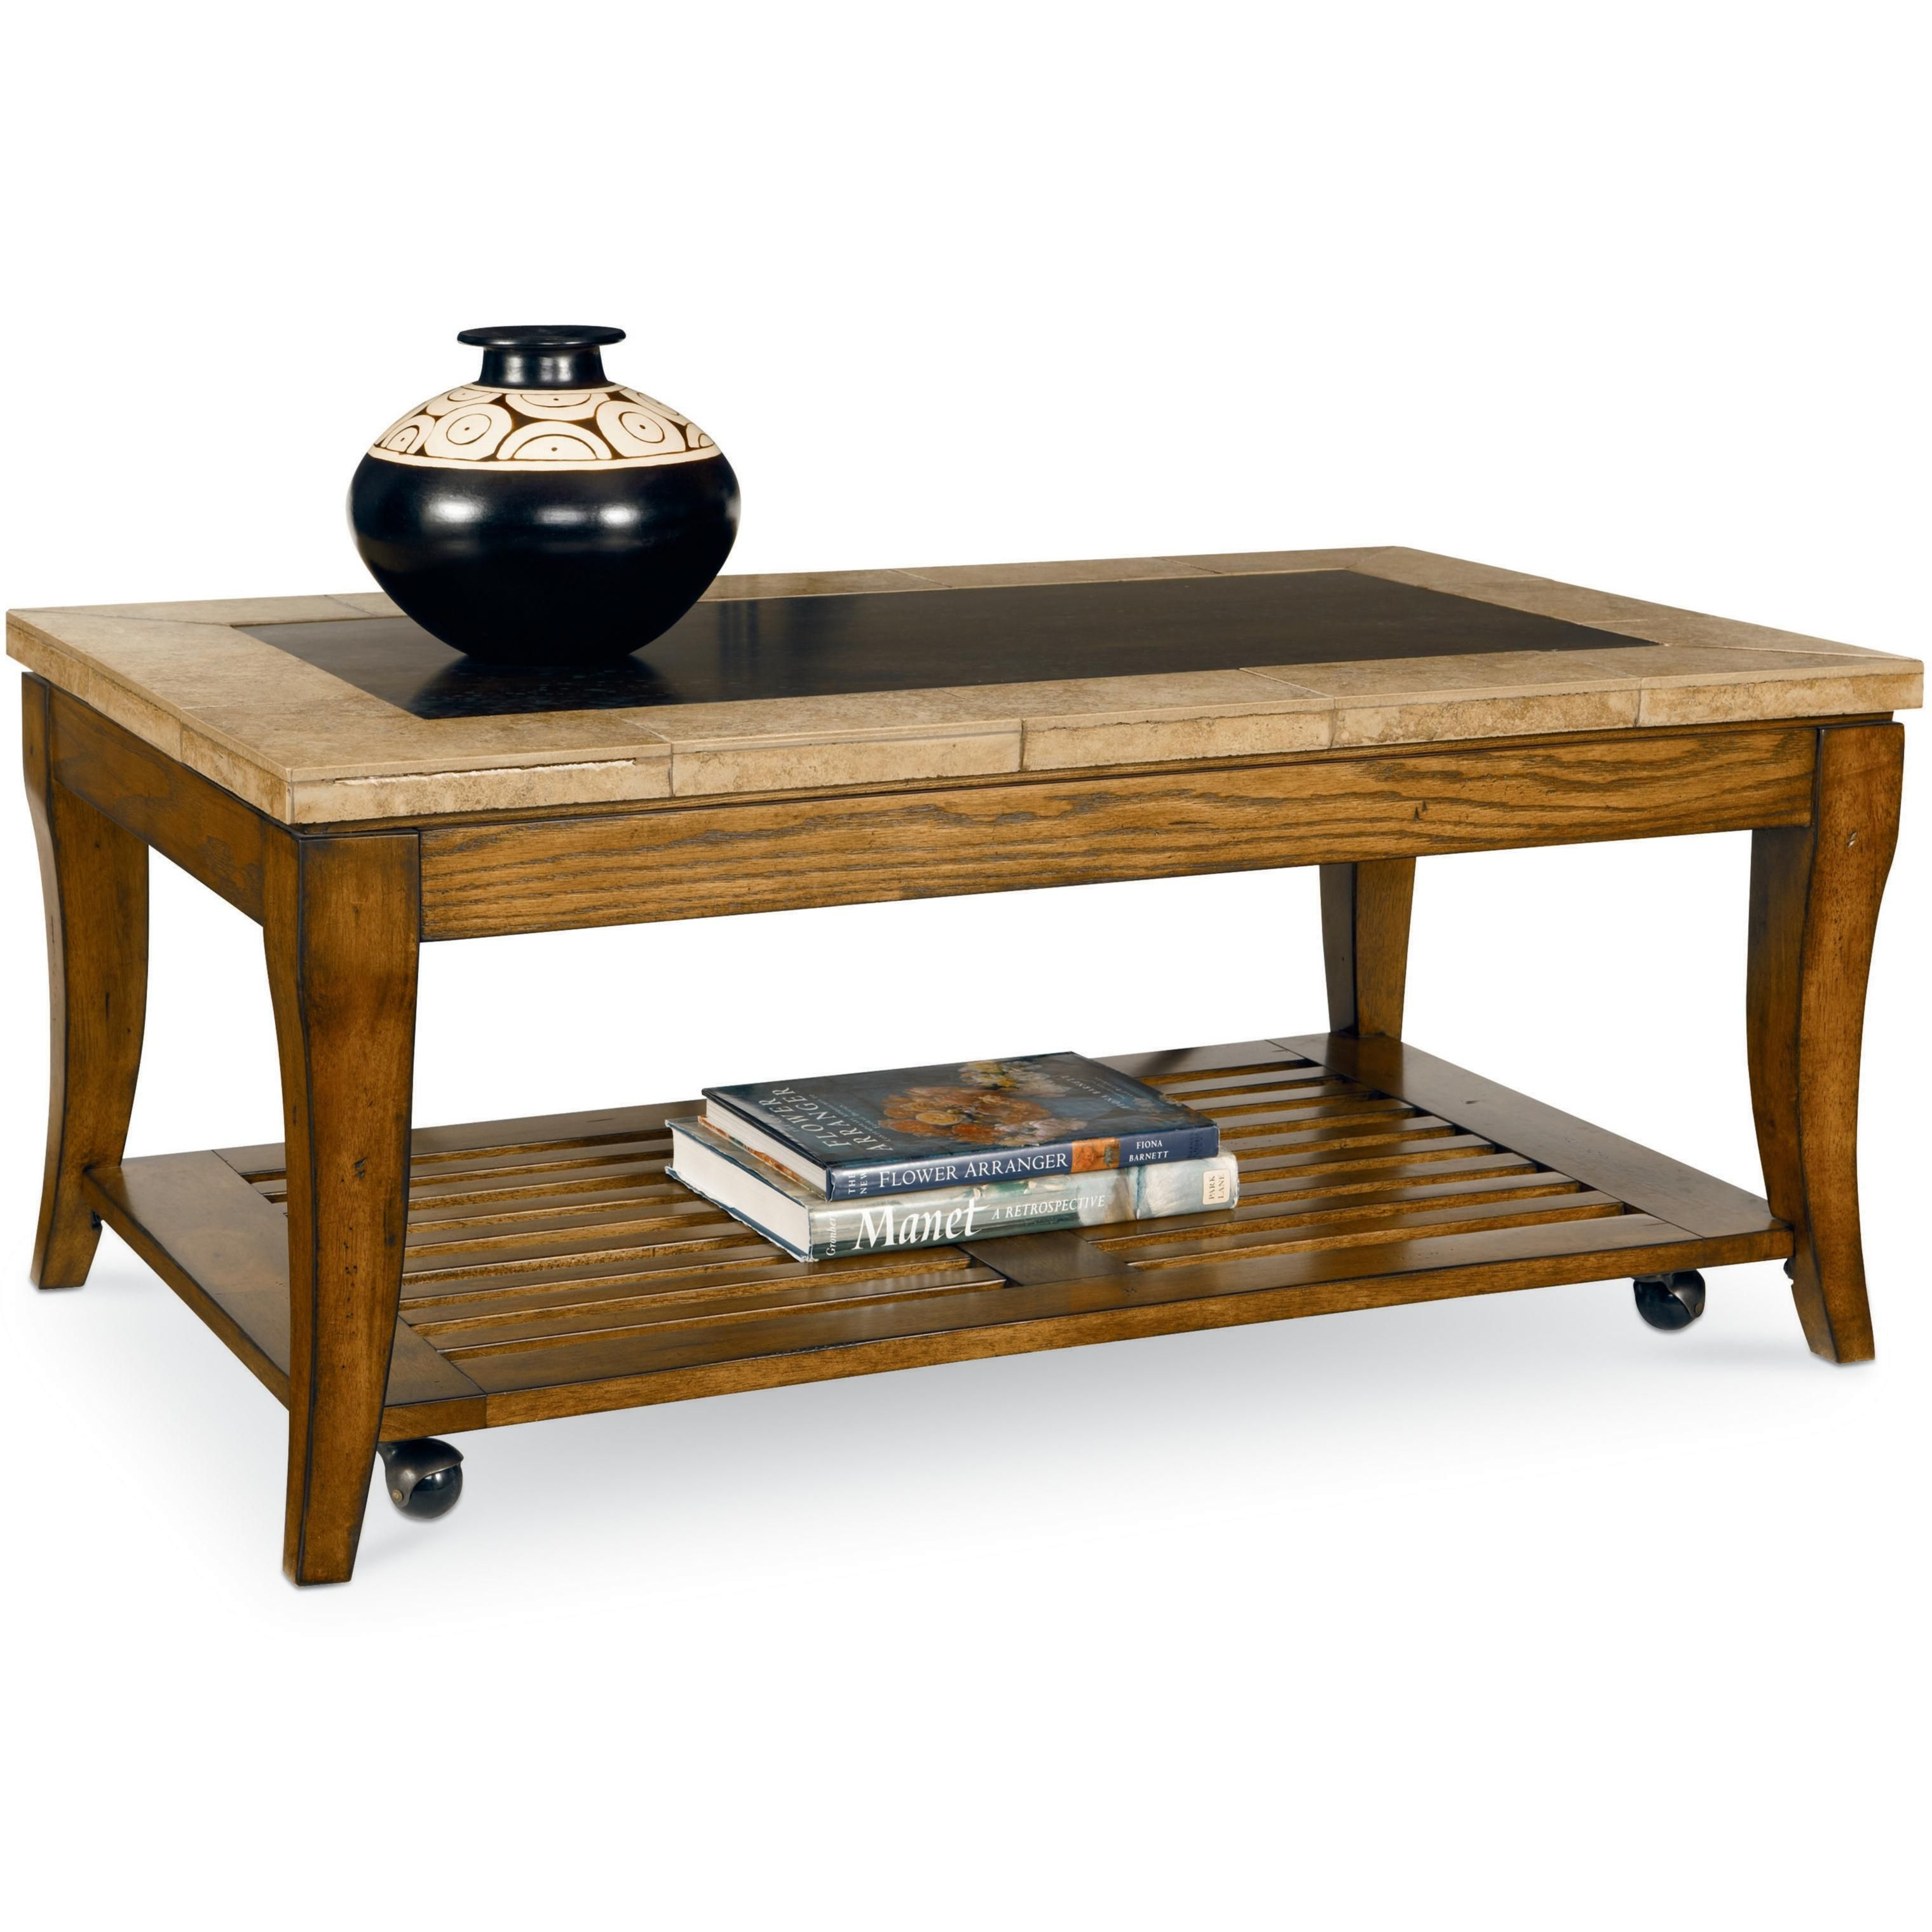 Rockford Rectangular Cocktail Table With Casters And Shelf By Broyhill Furniture At Becker Furniture World Broyhill Furniture Coffee Table Table [ 3040 x 3040 Pixel ]